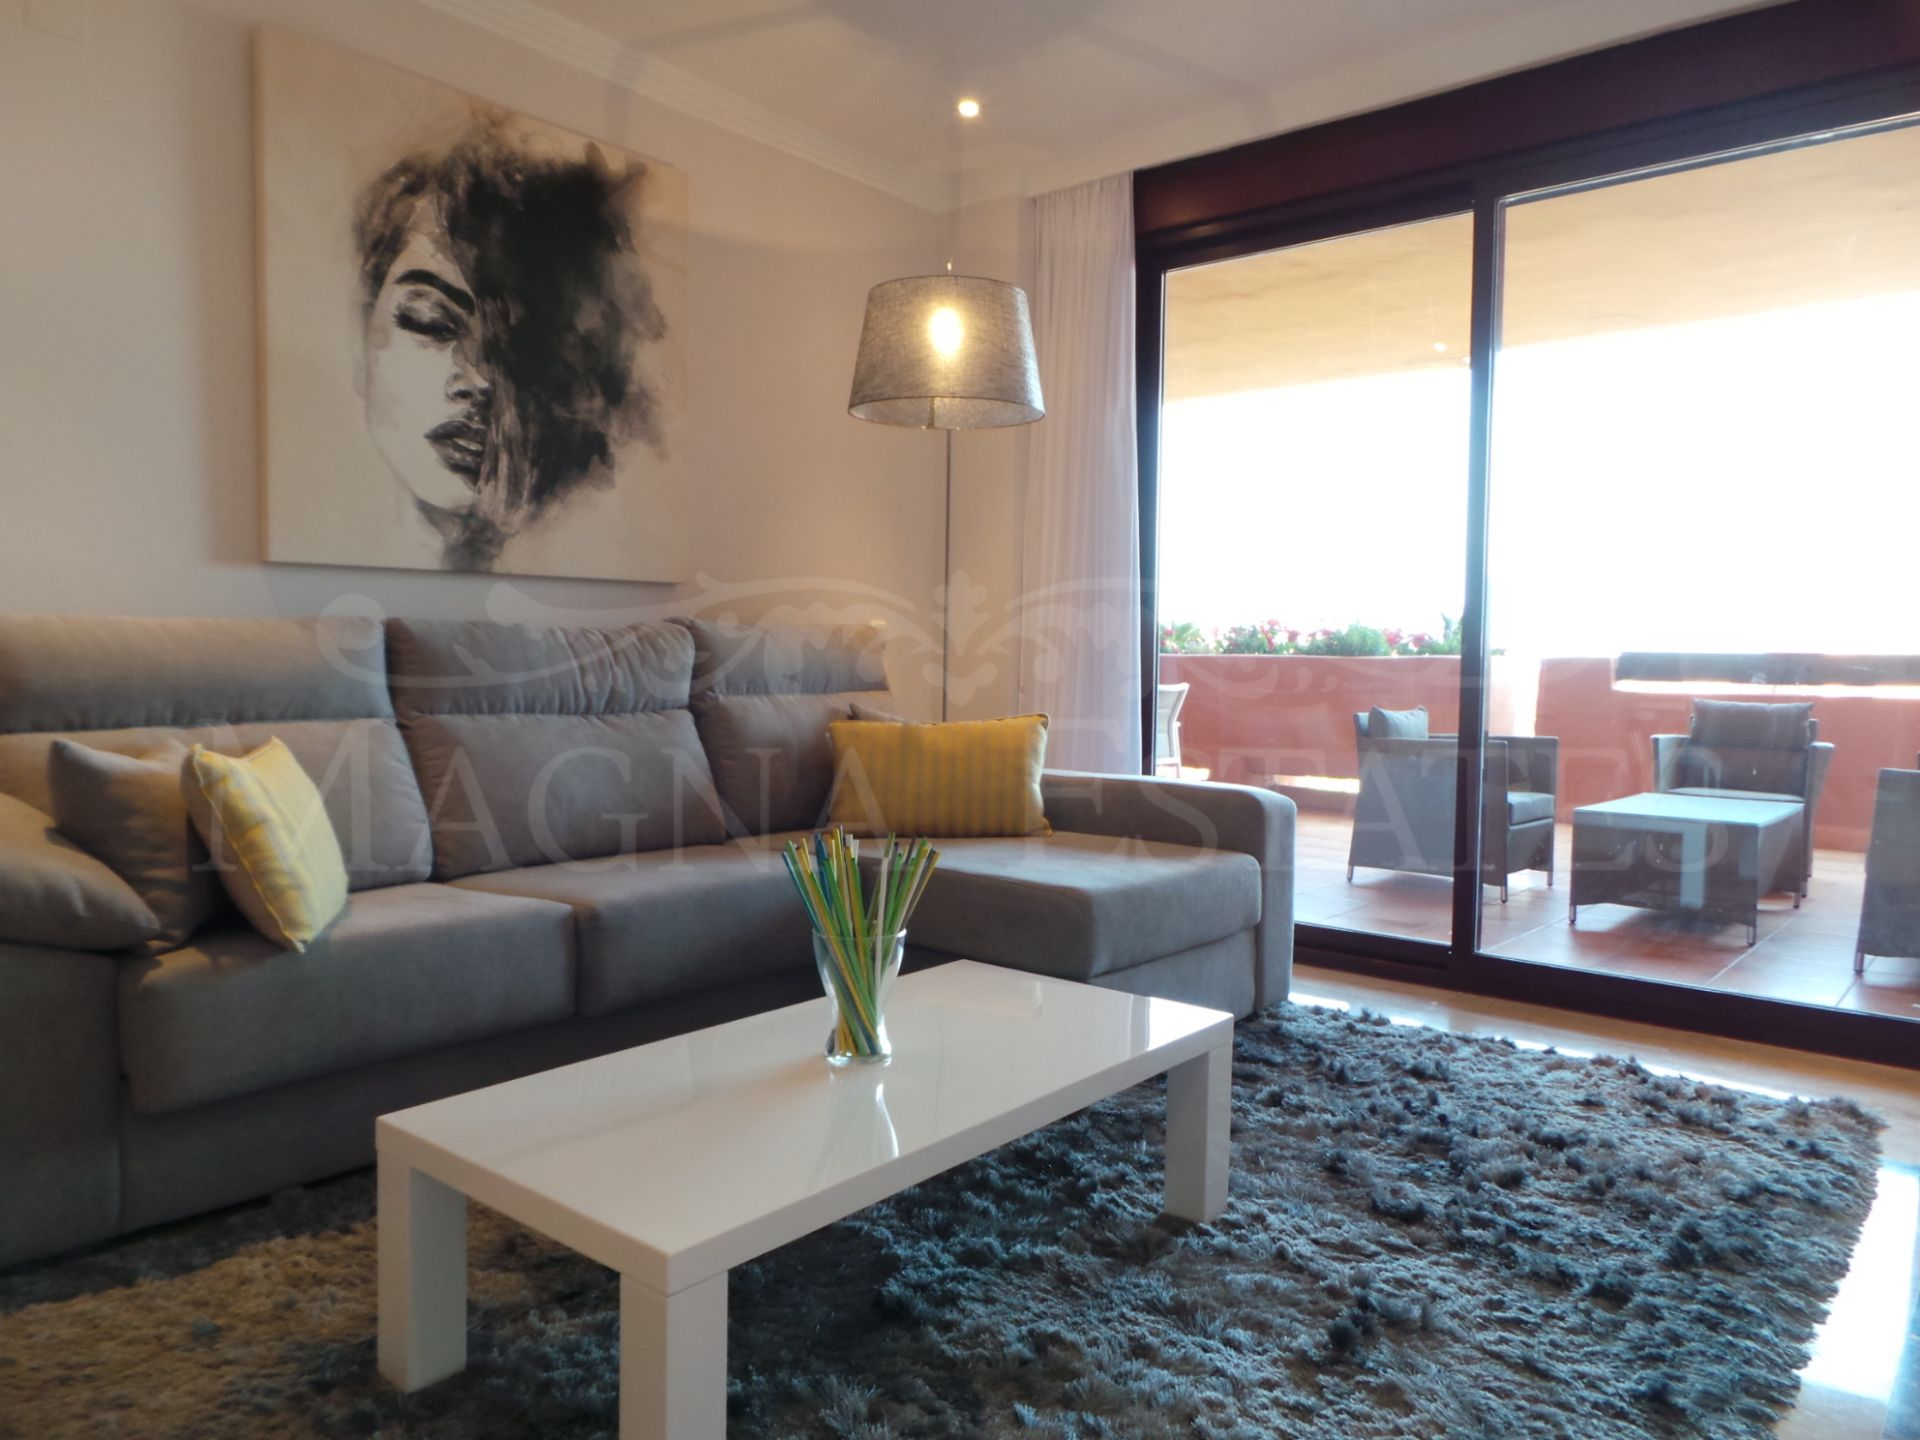 3 bedroom apartment on the New Golden Mile 250 meters from the beach